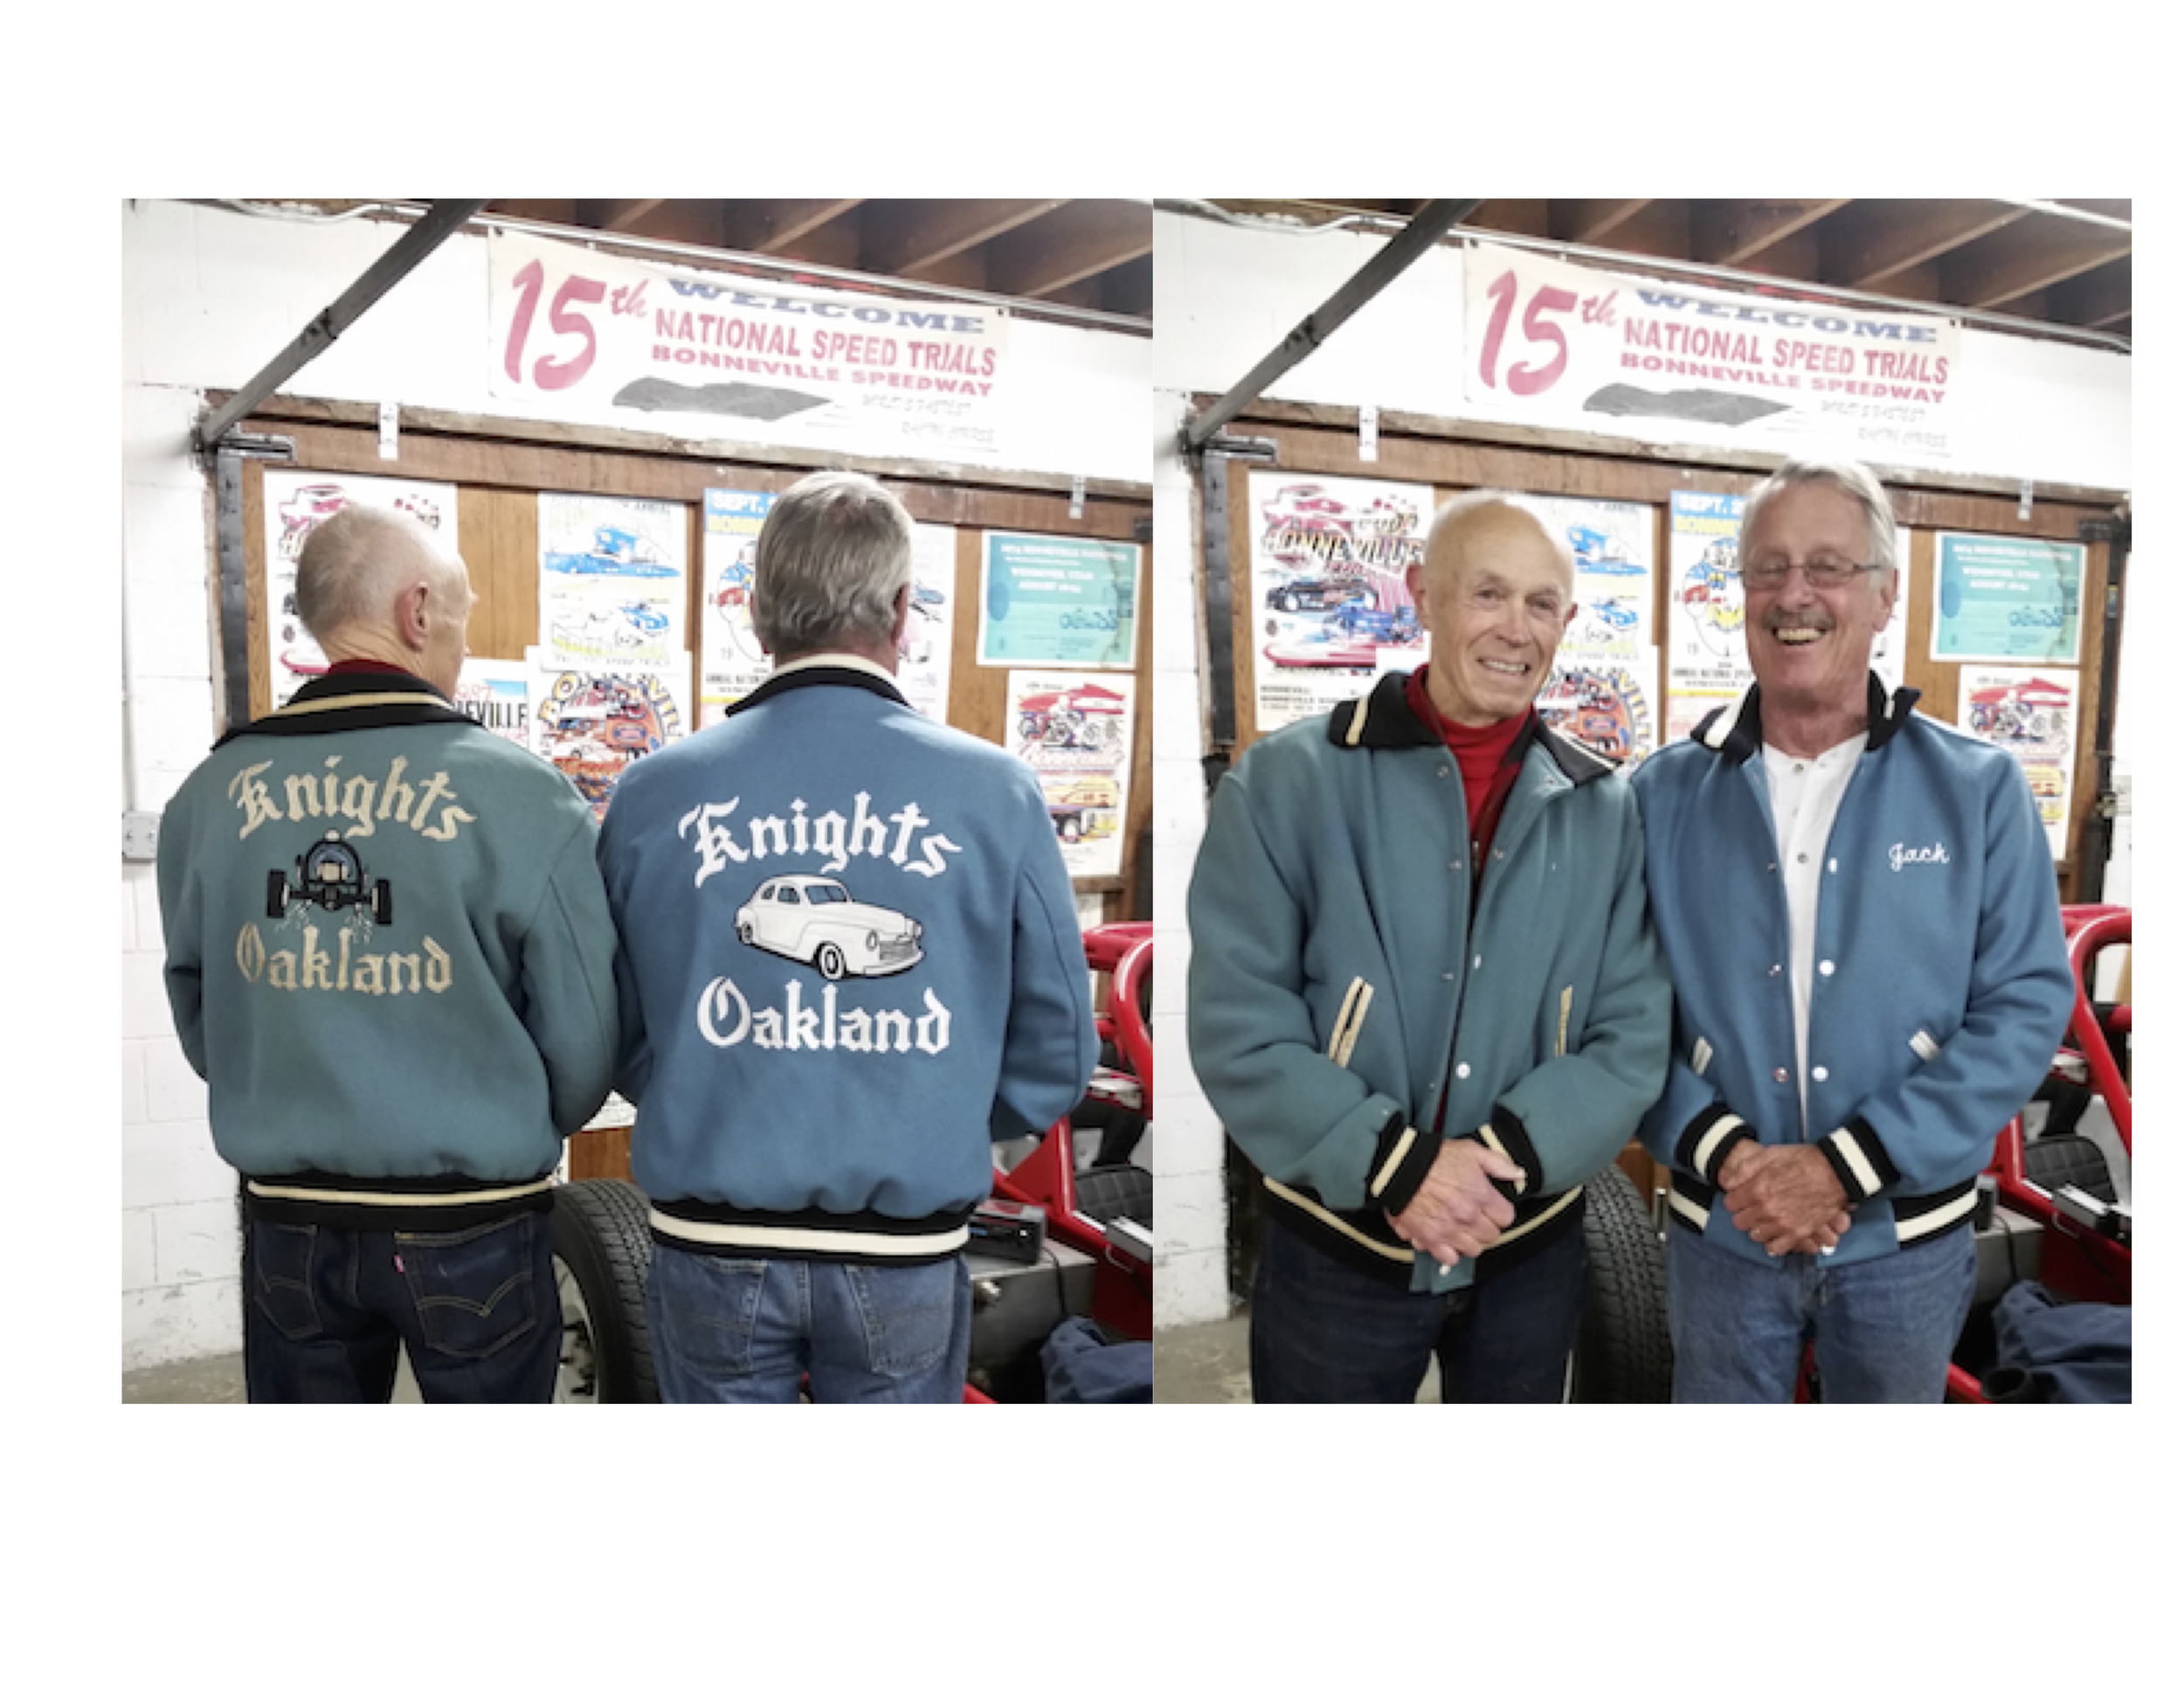 Someone emailed us a few months ago looking to make a very special jacket reproduction for her Father, of an old racing jacket down in the Bay Area. Here are the results and smiles after she gave it to him as a surprise yesterday! His racing partner still sports the original. Cheers Lori! You did a great job and we were happy to help.